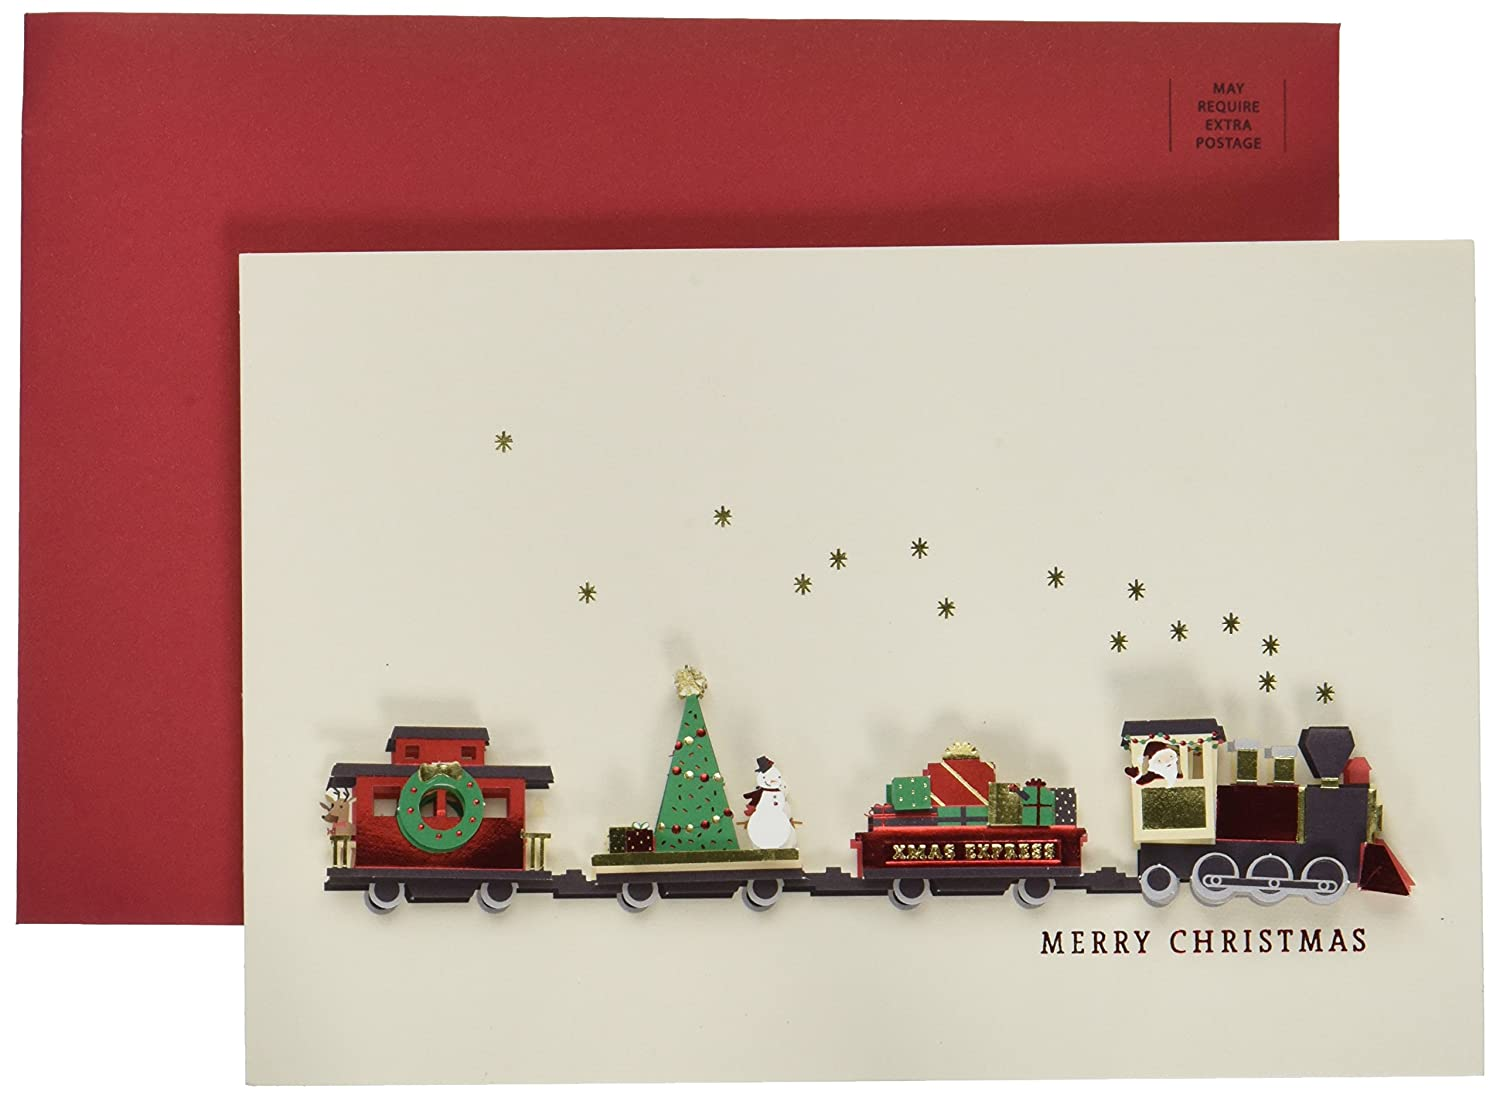 Amazon.com: Hallmark Signature Greeting Christmas Card (Christmas ...